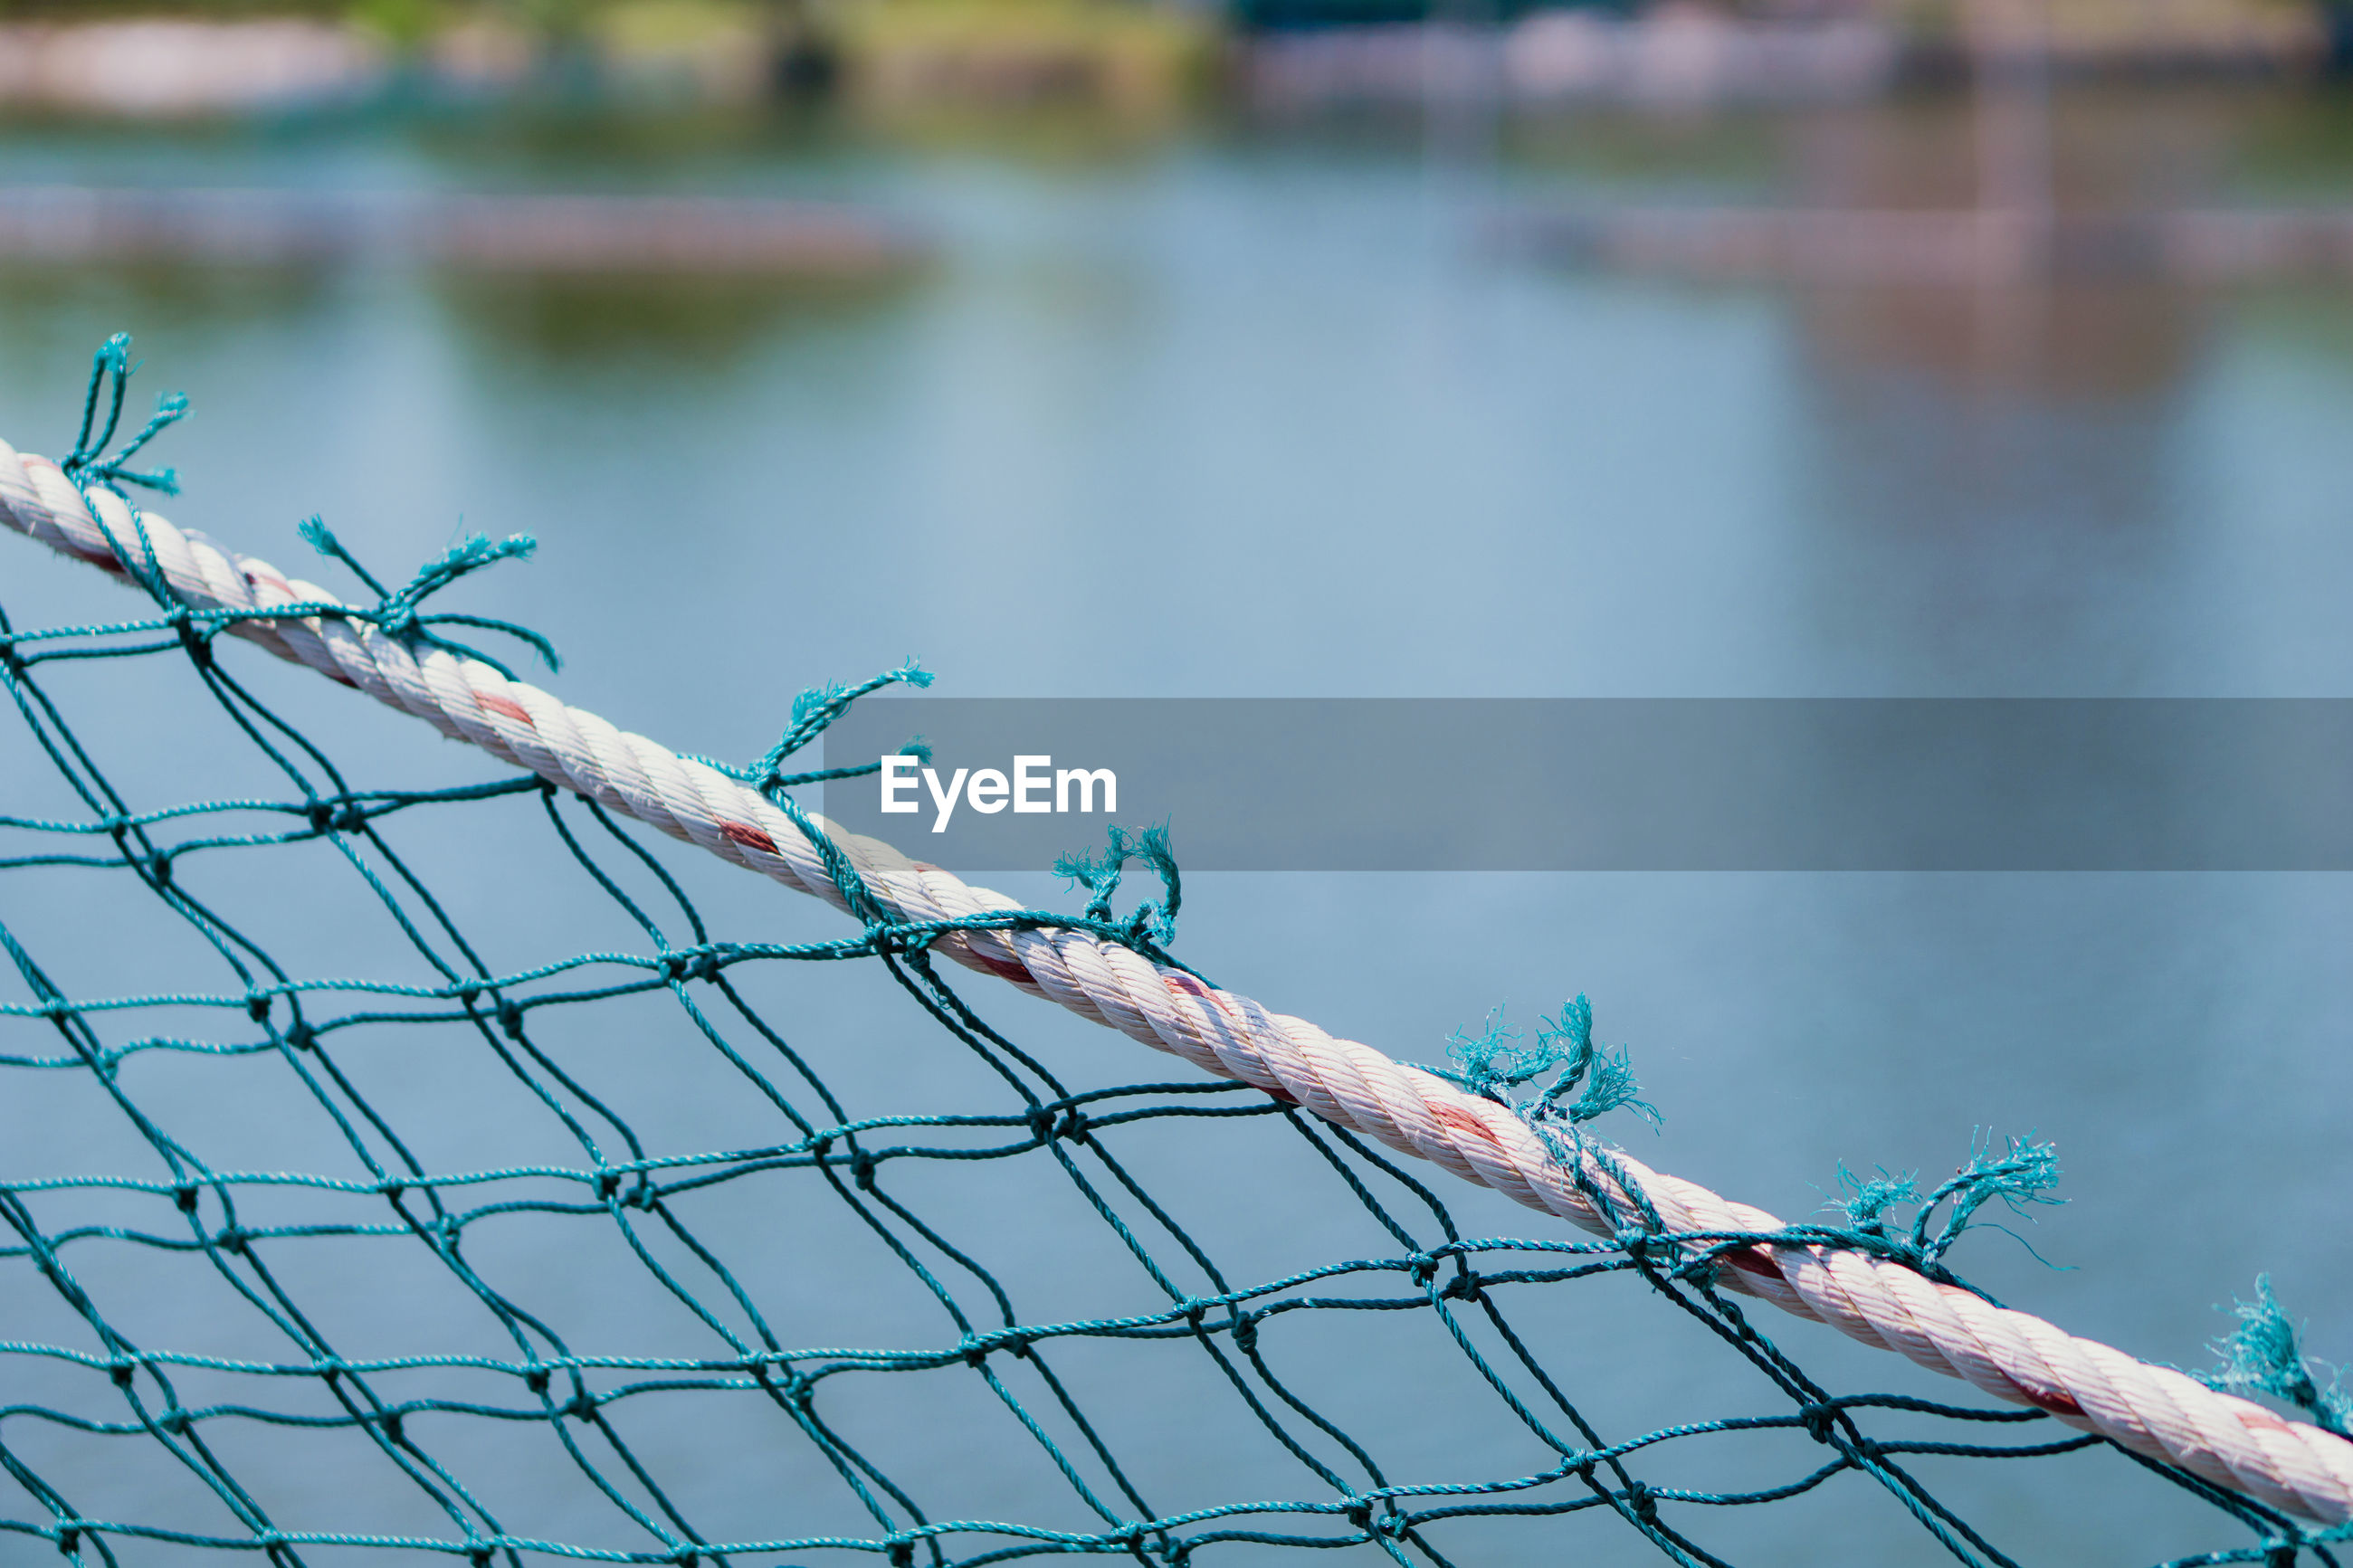 Close-up of barbed wire fence against blue sky